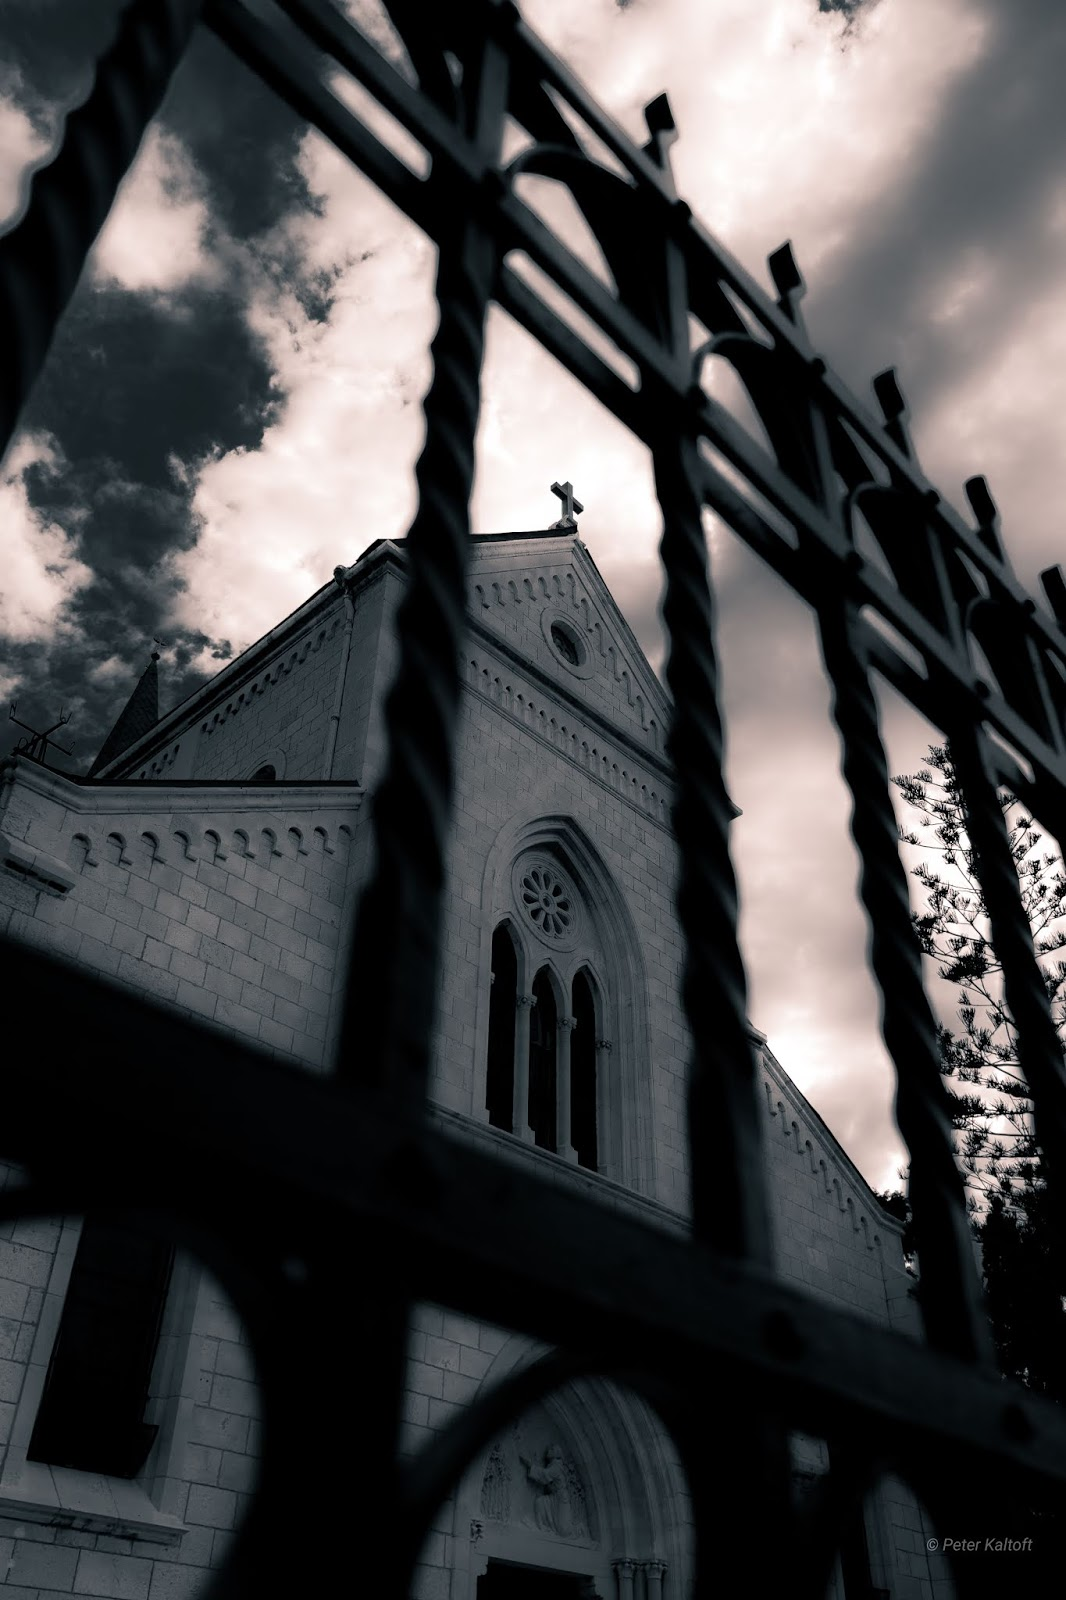 St. Anthony's Church seen through the bars in front of the church from a dramatic angle.